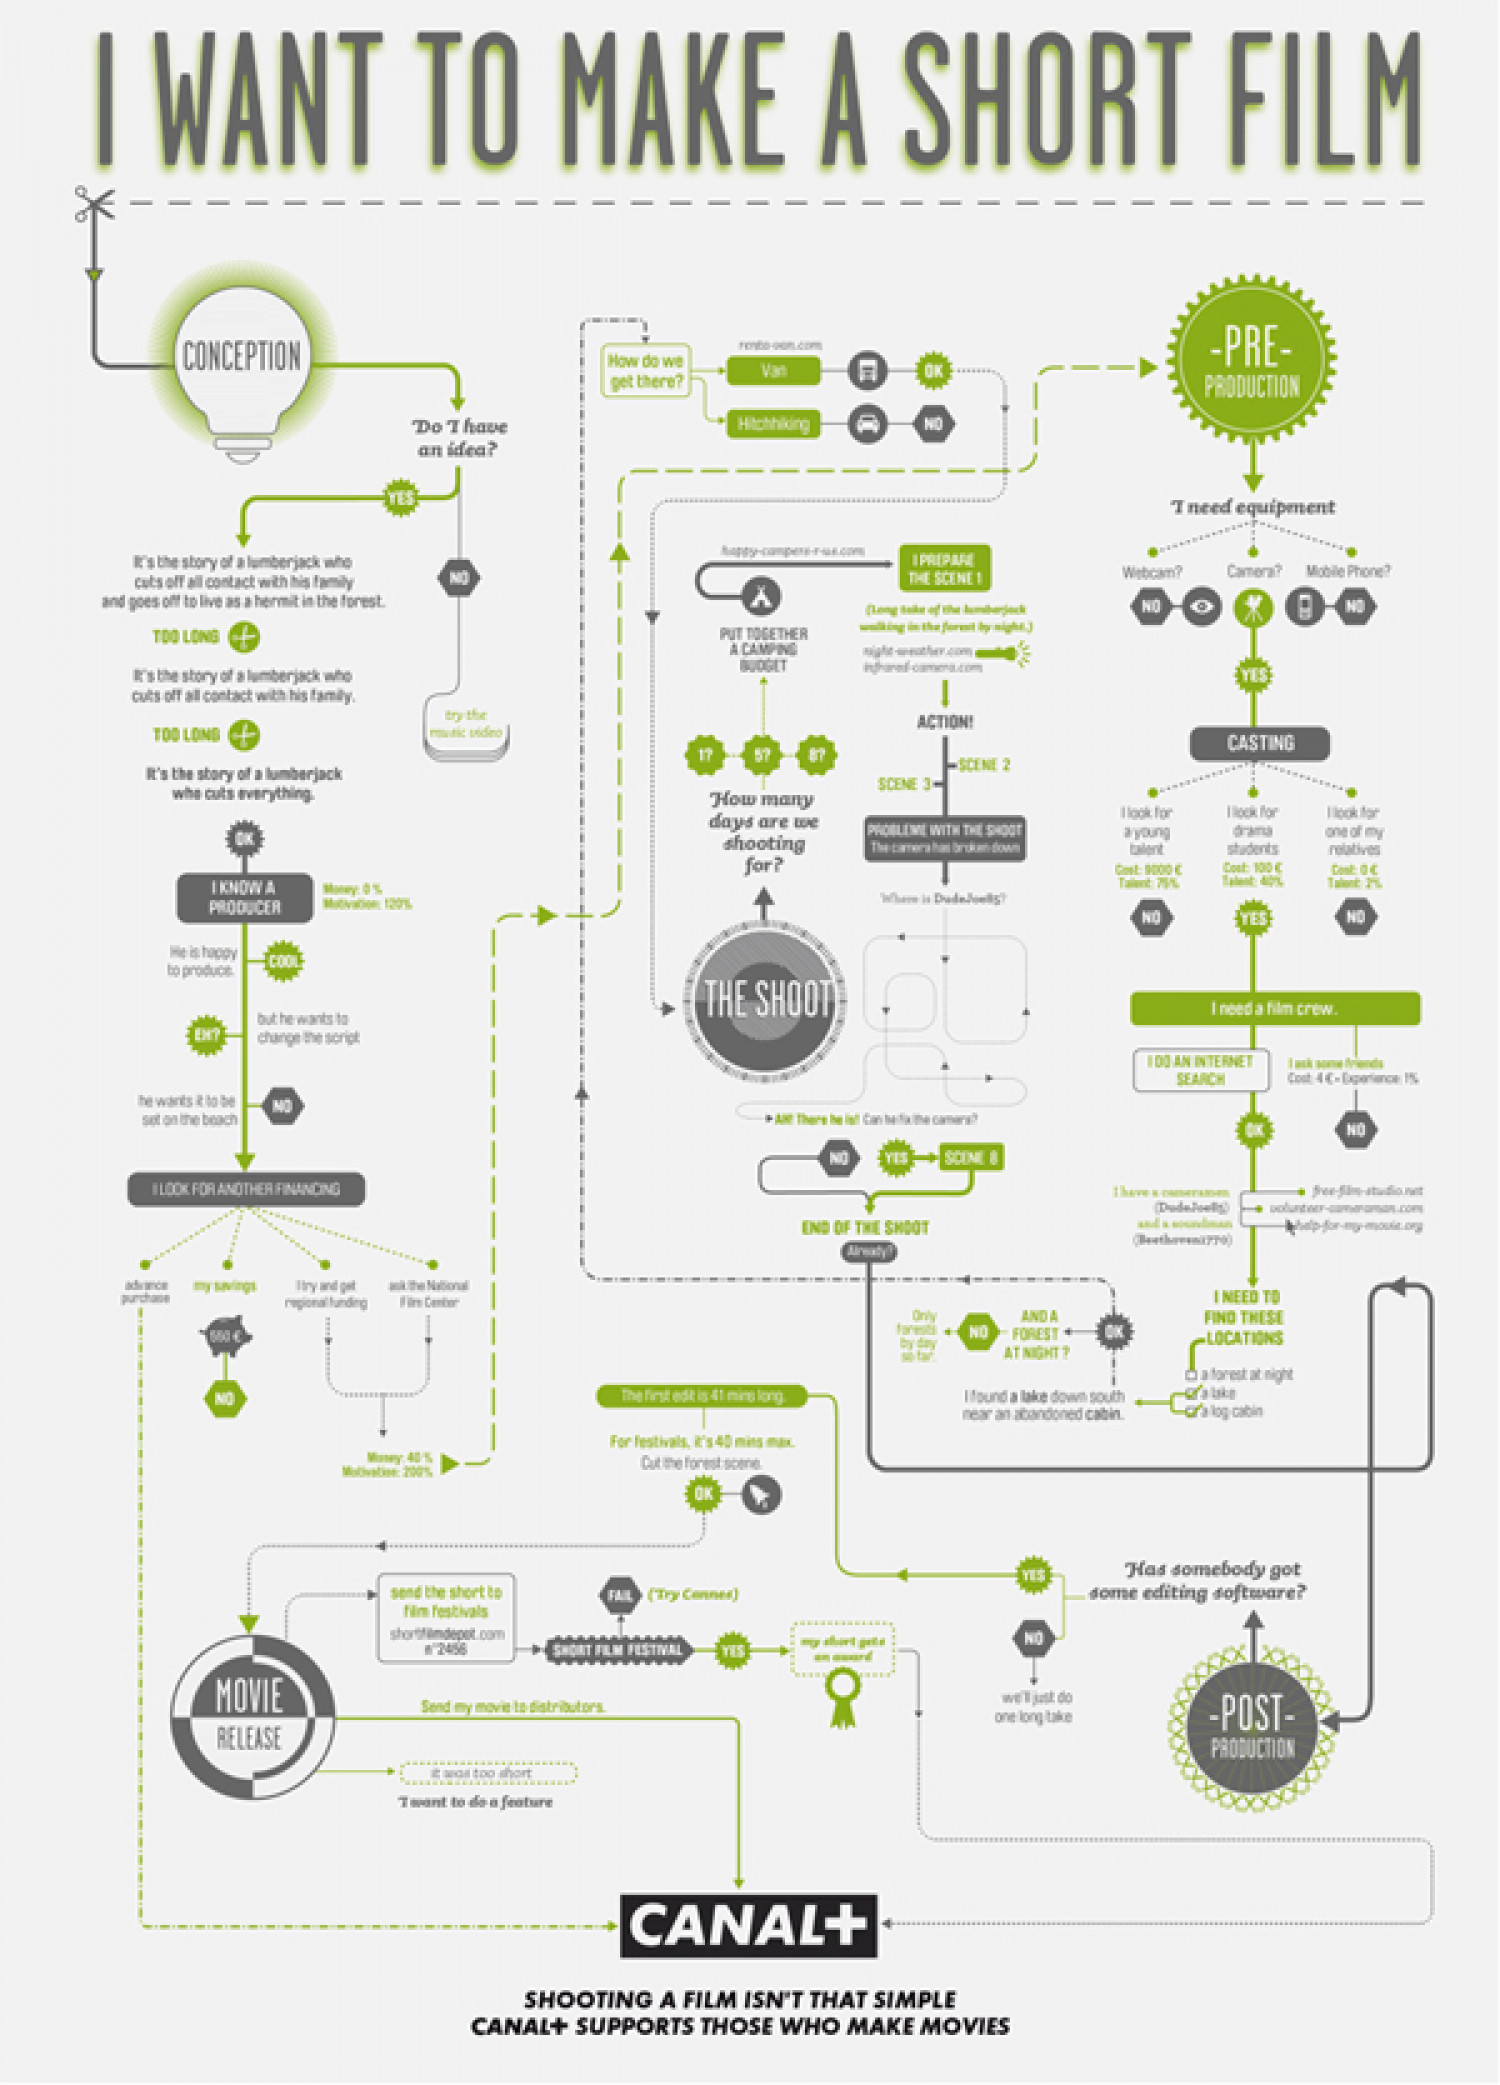 Canal plus film making flow charts visual canal plus film making flow charts infographic ccuart Image collections